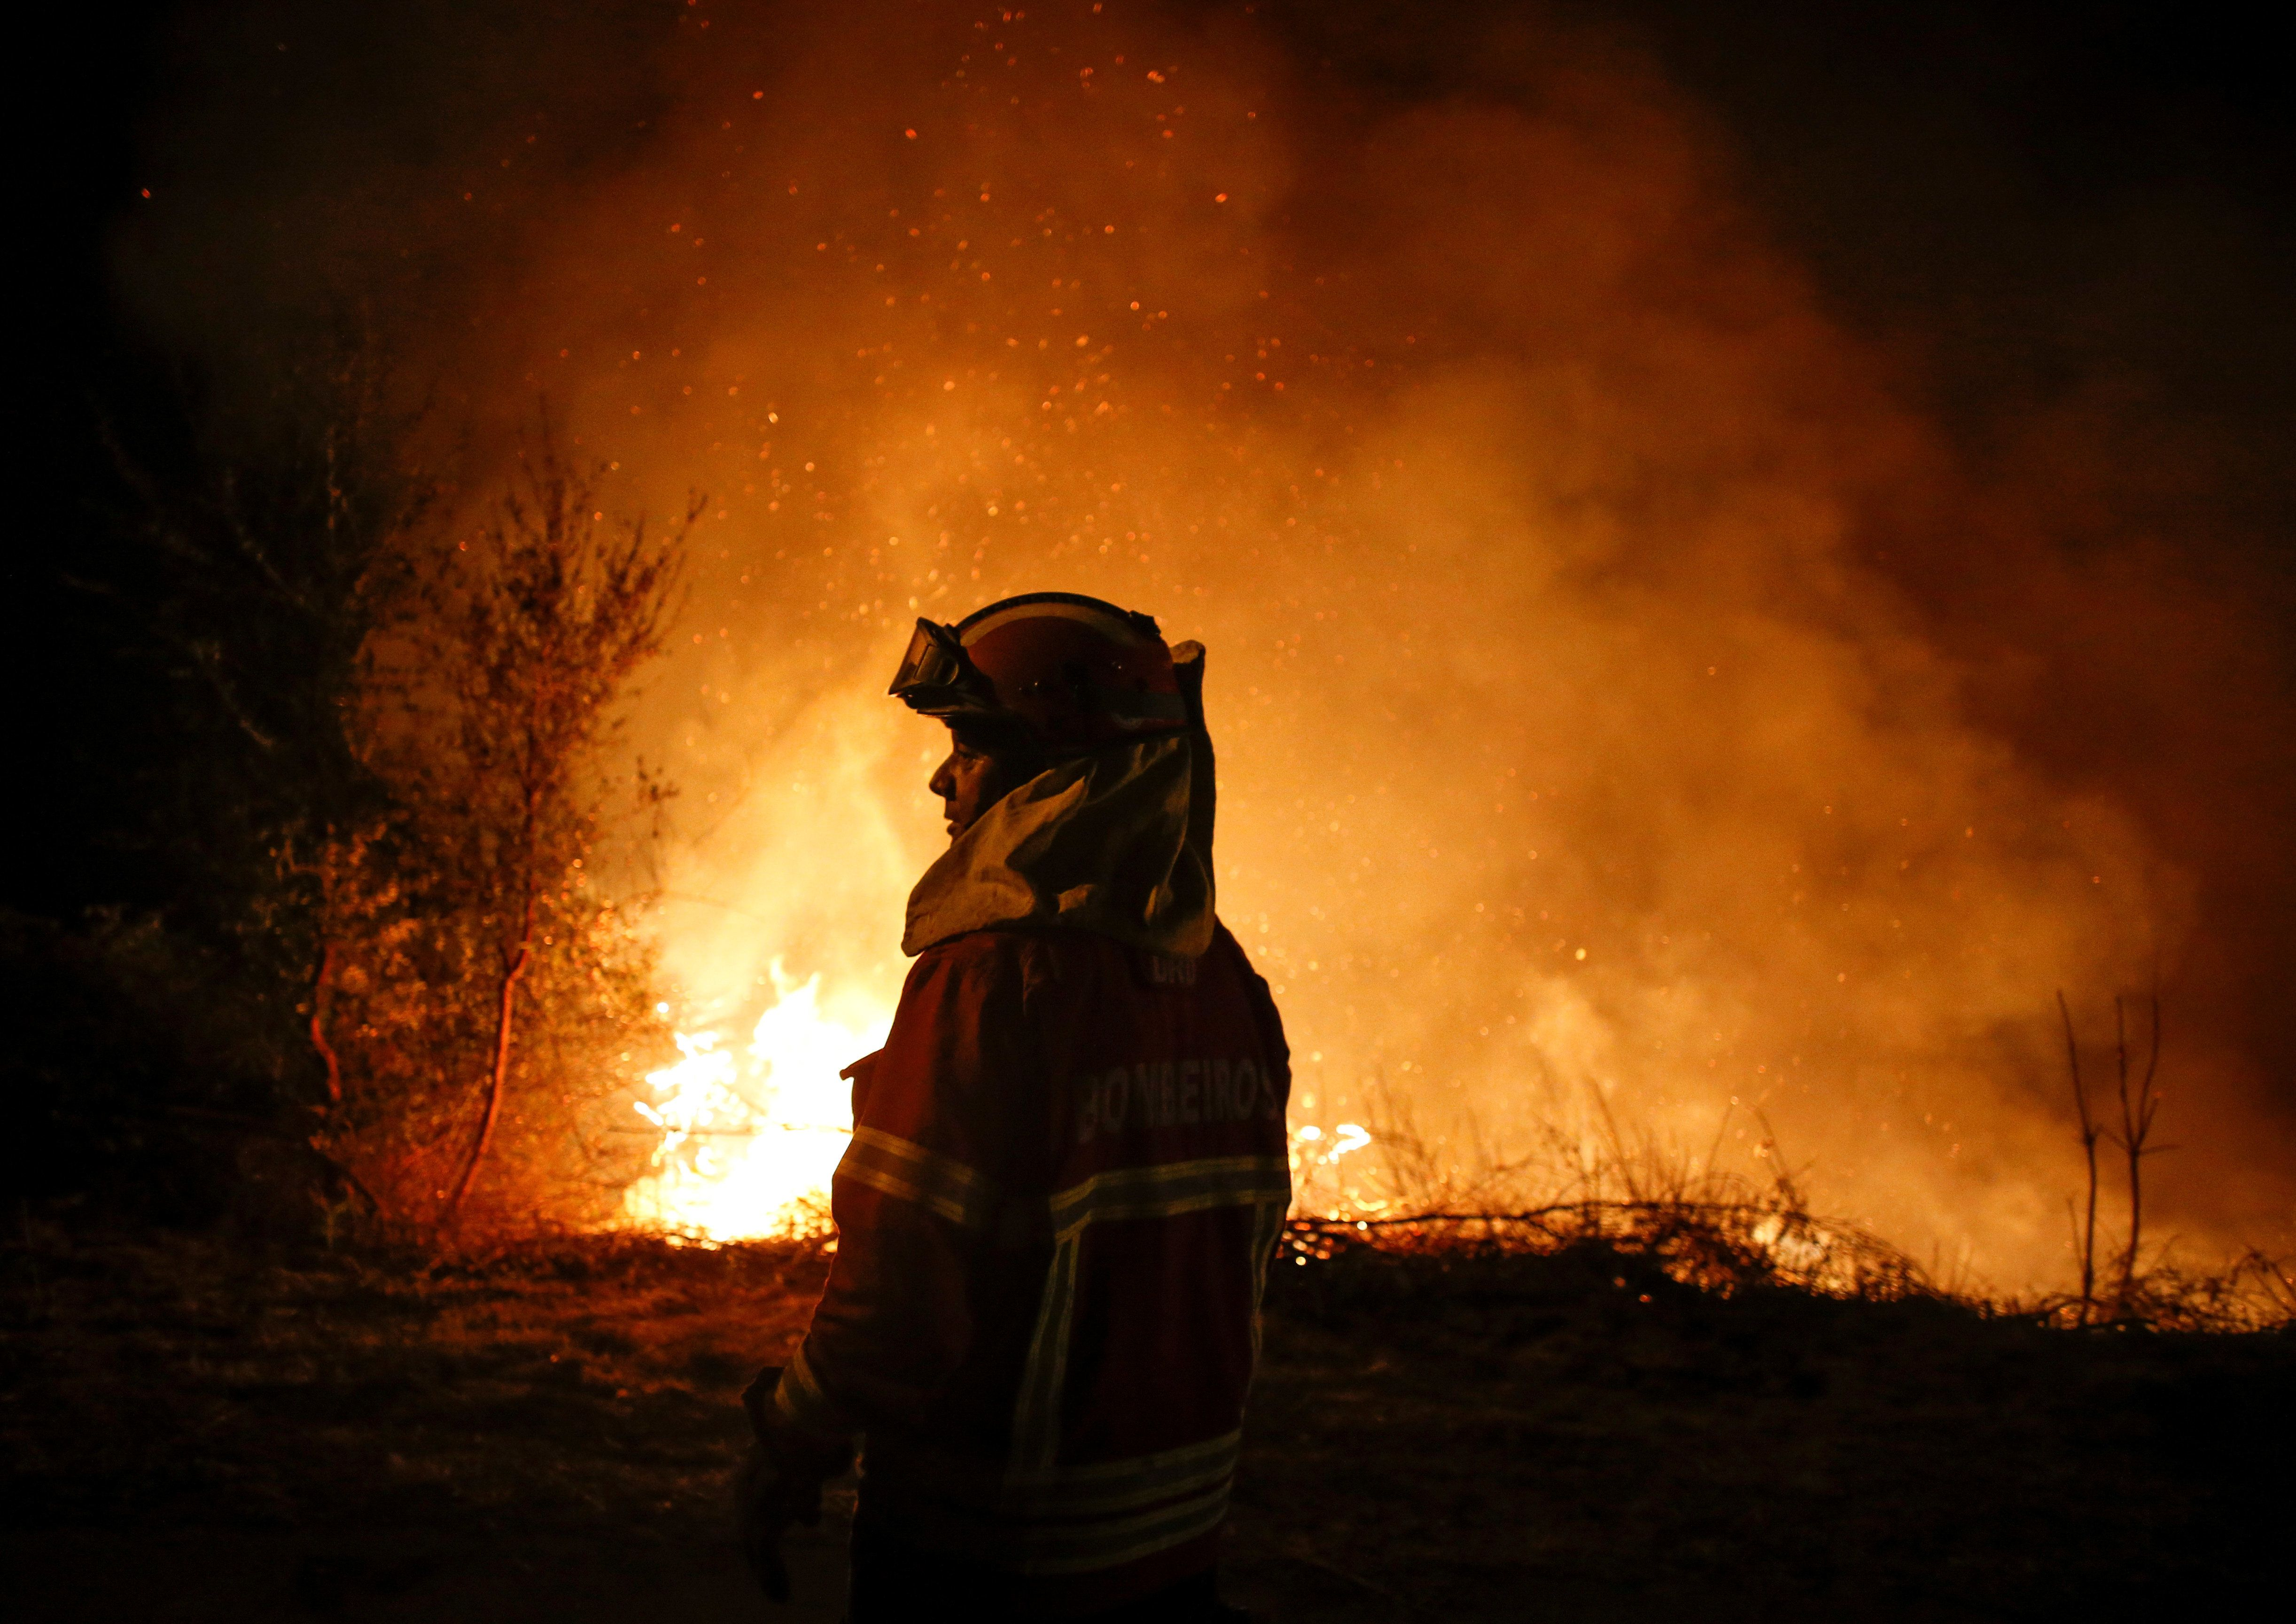 A firefighterstandssilhouetted againstthe flames in Cabanoes near Lousa, Portugal,...